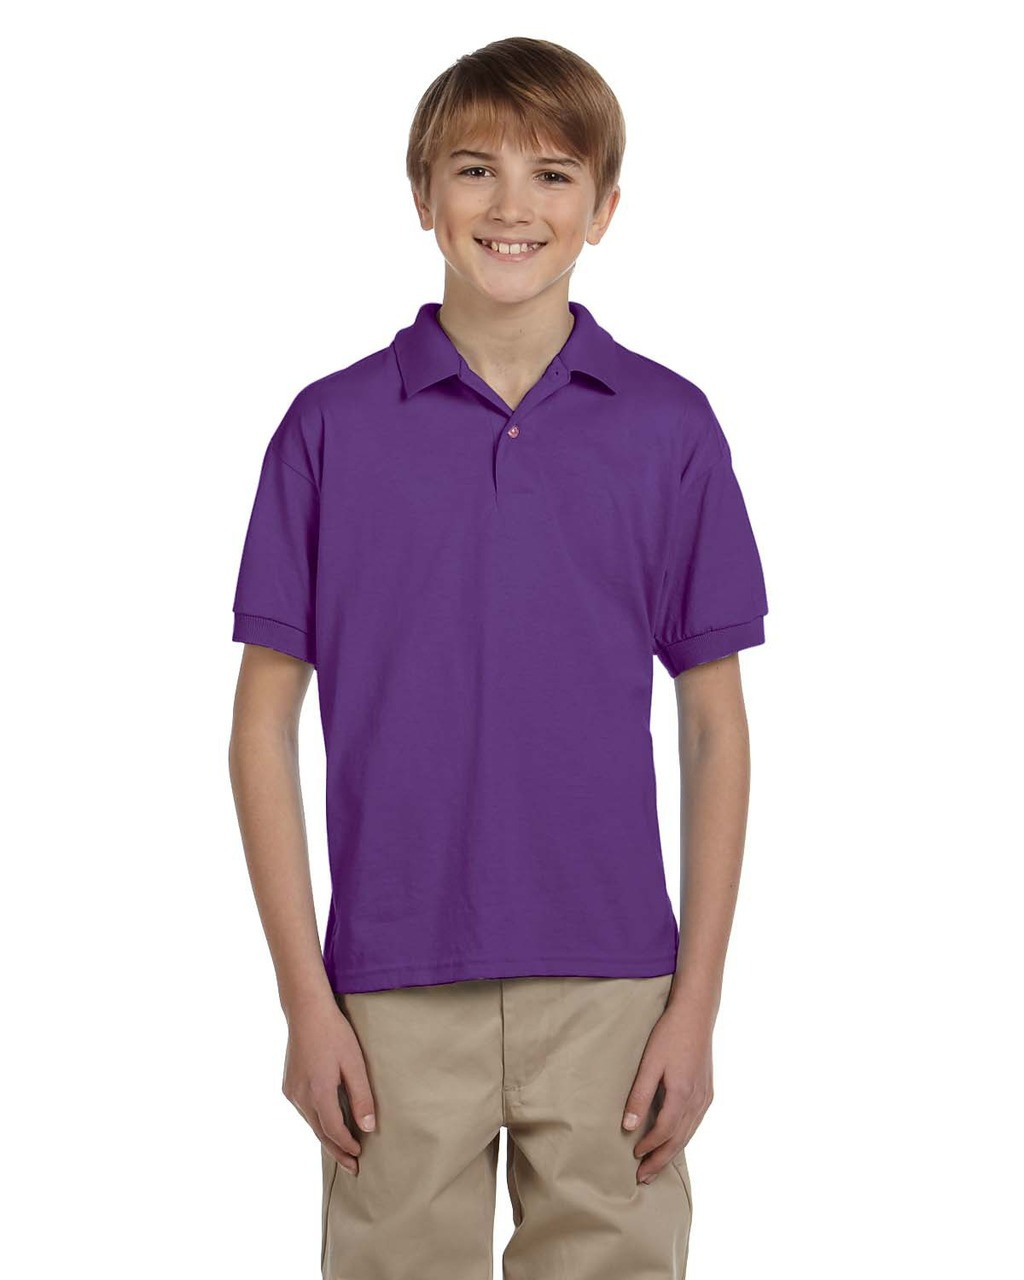 866bdeb08 Purple - G880B Gildan DryBlend® Youth 50/50 Jersey Polo Shirt |  Blankclothing.